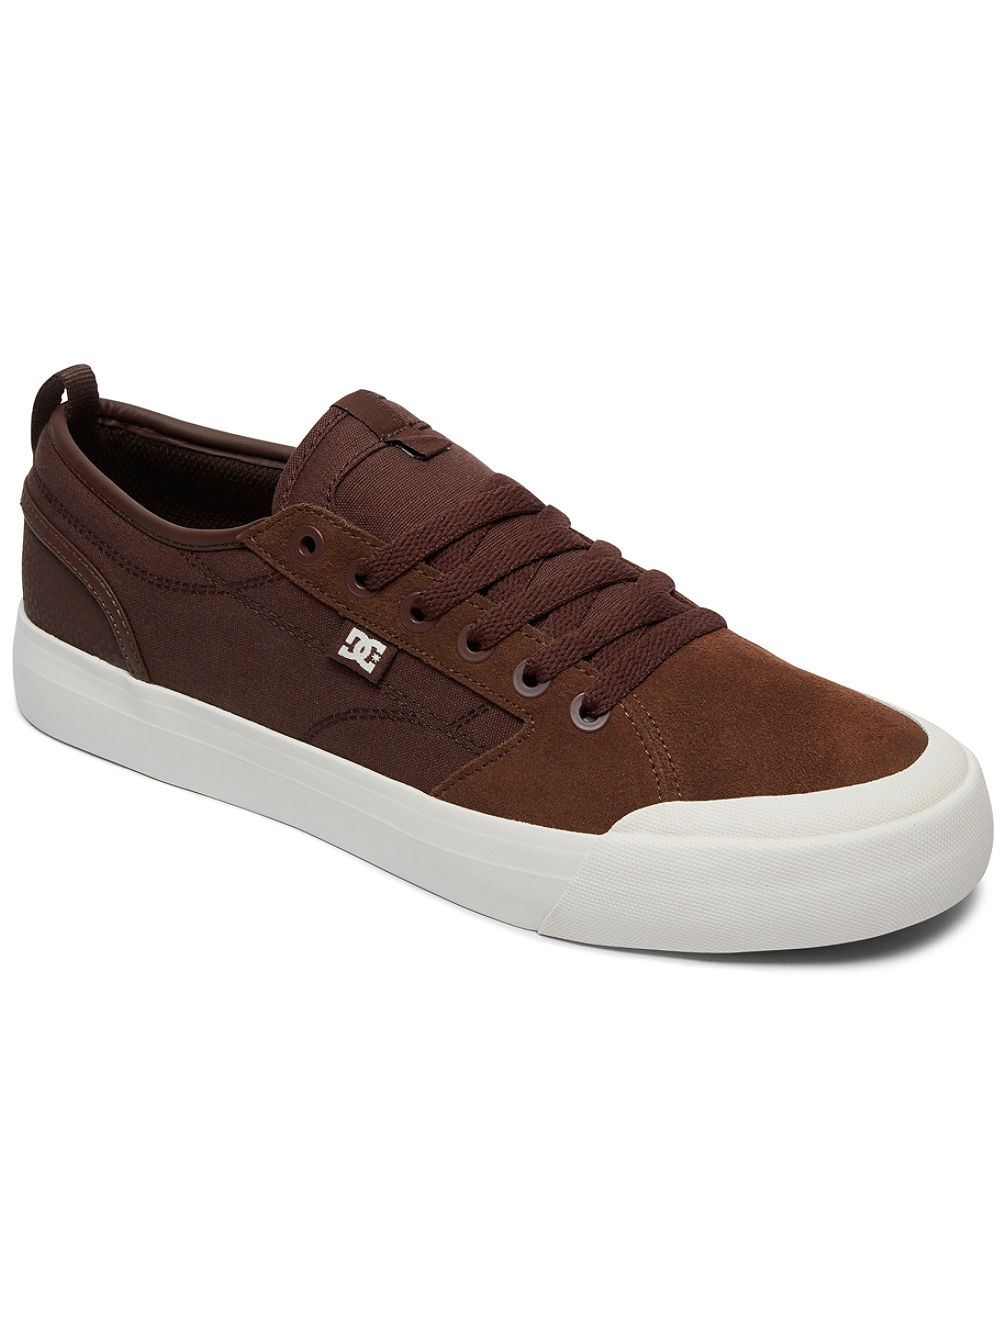 Evan Smith Sneakers